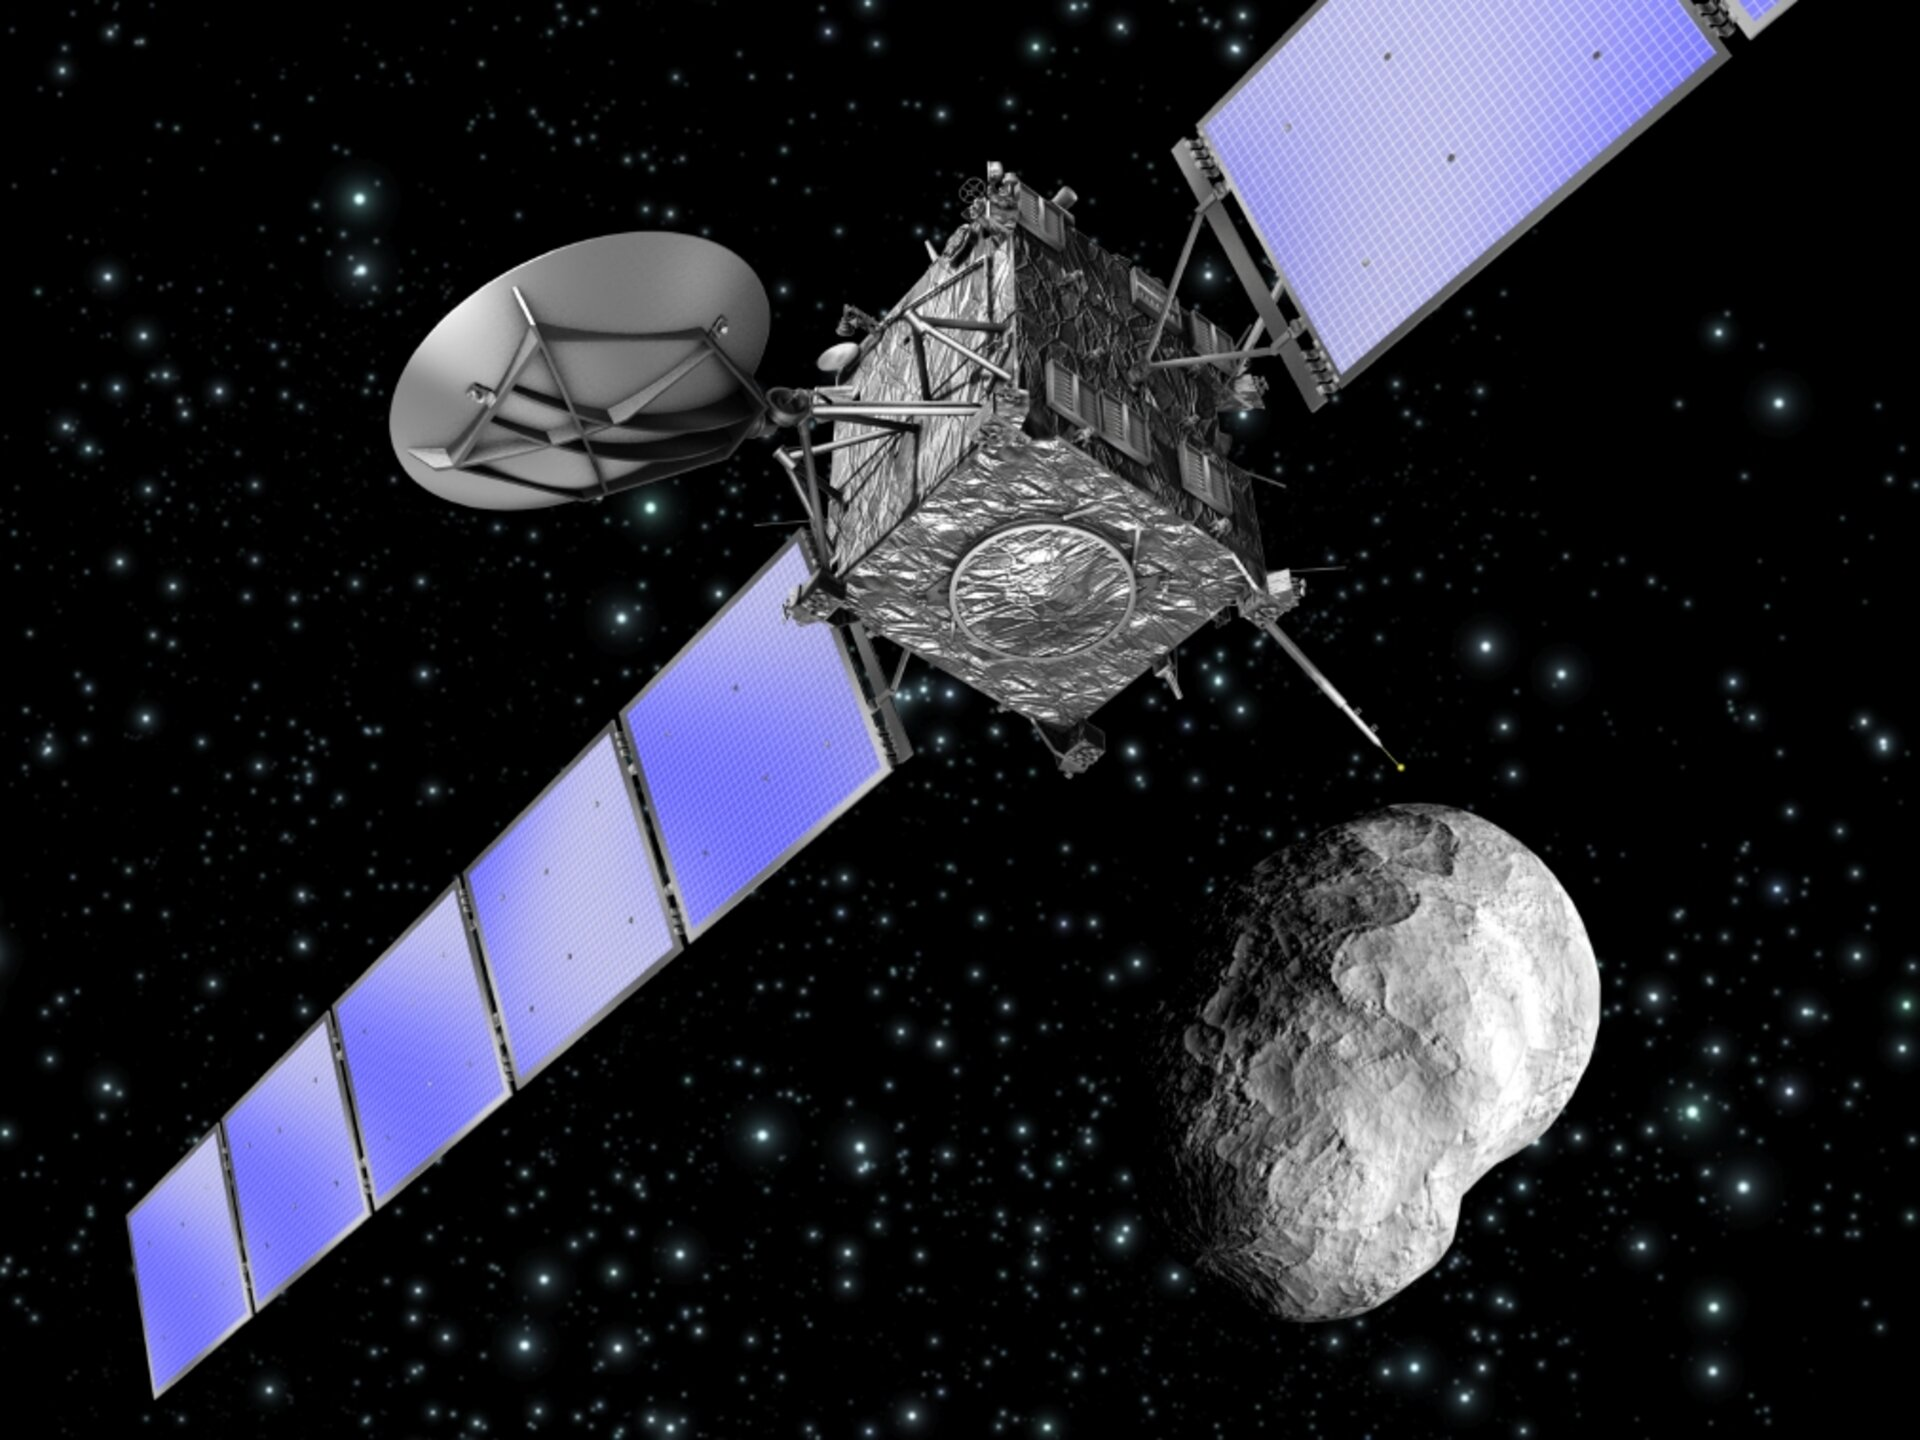 Artist's impression of Rosetta as it flies by asteroid Steins